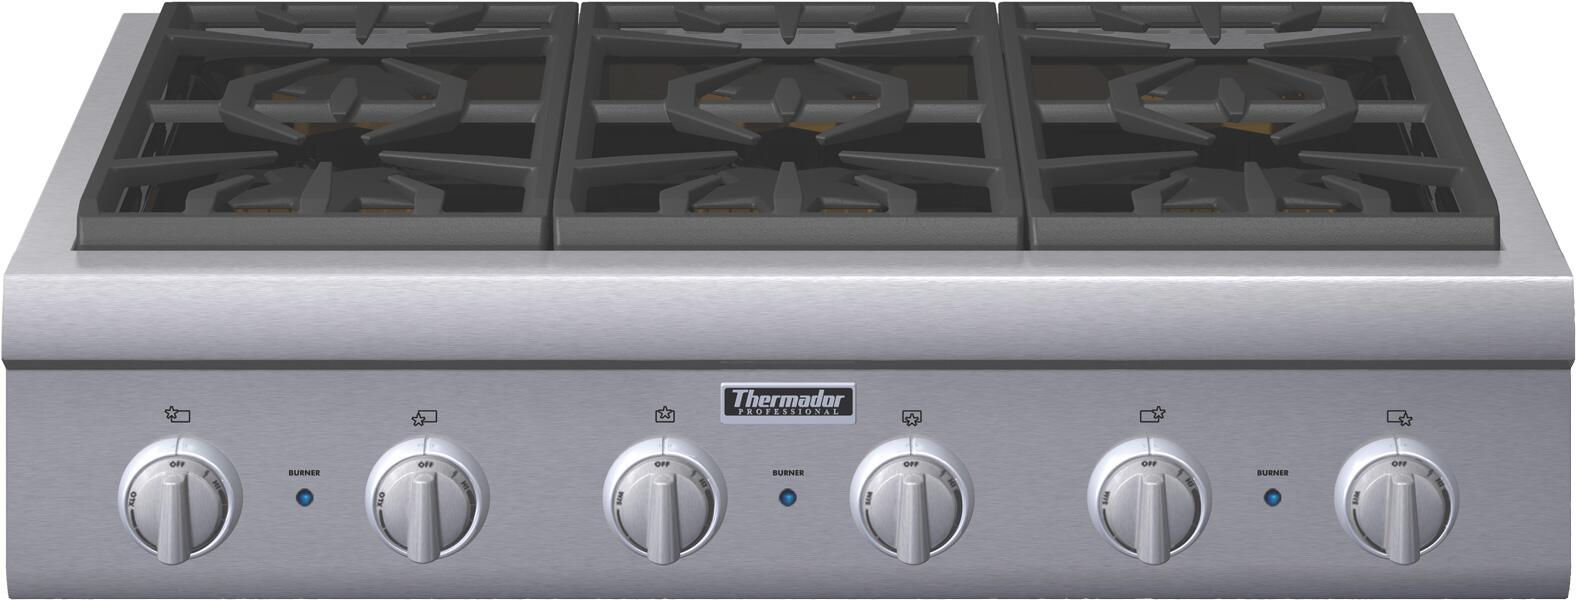 Thermador Pcg366g 36 Inch Professional Series Stainless